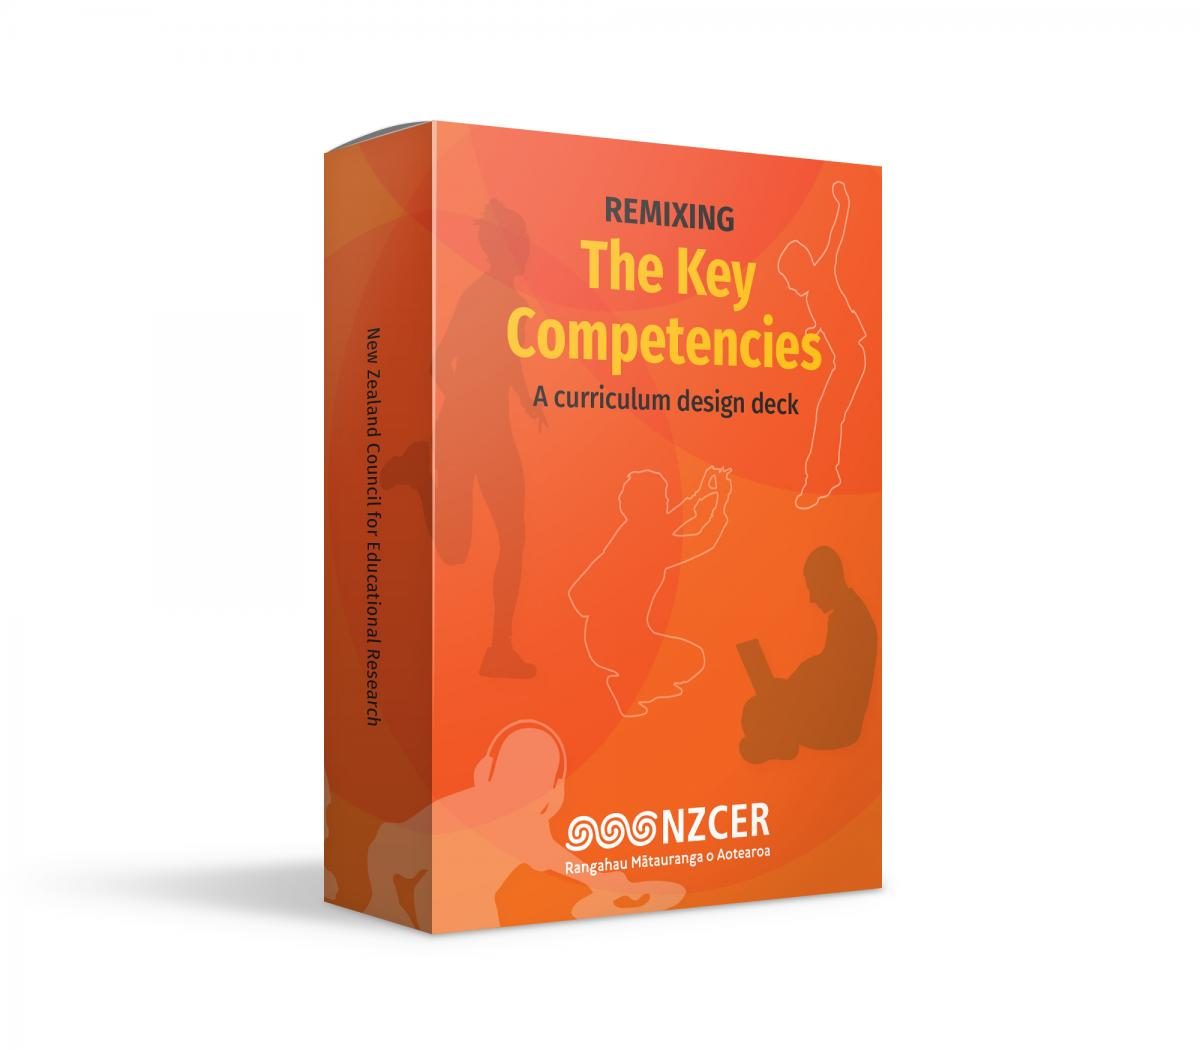 The Key Competencies design deck packaging